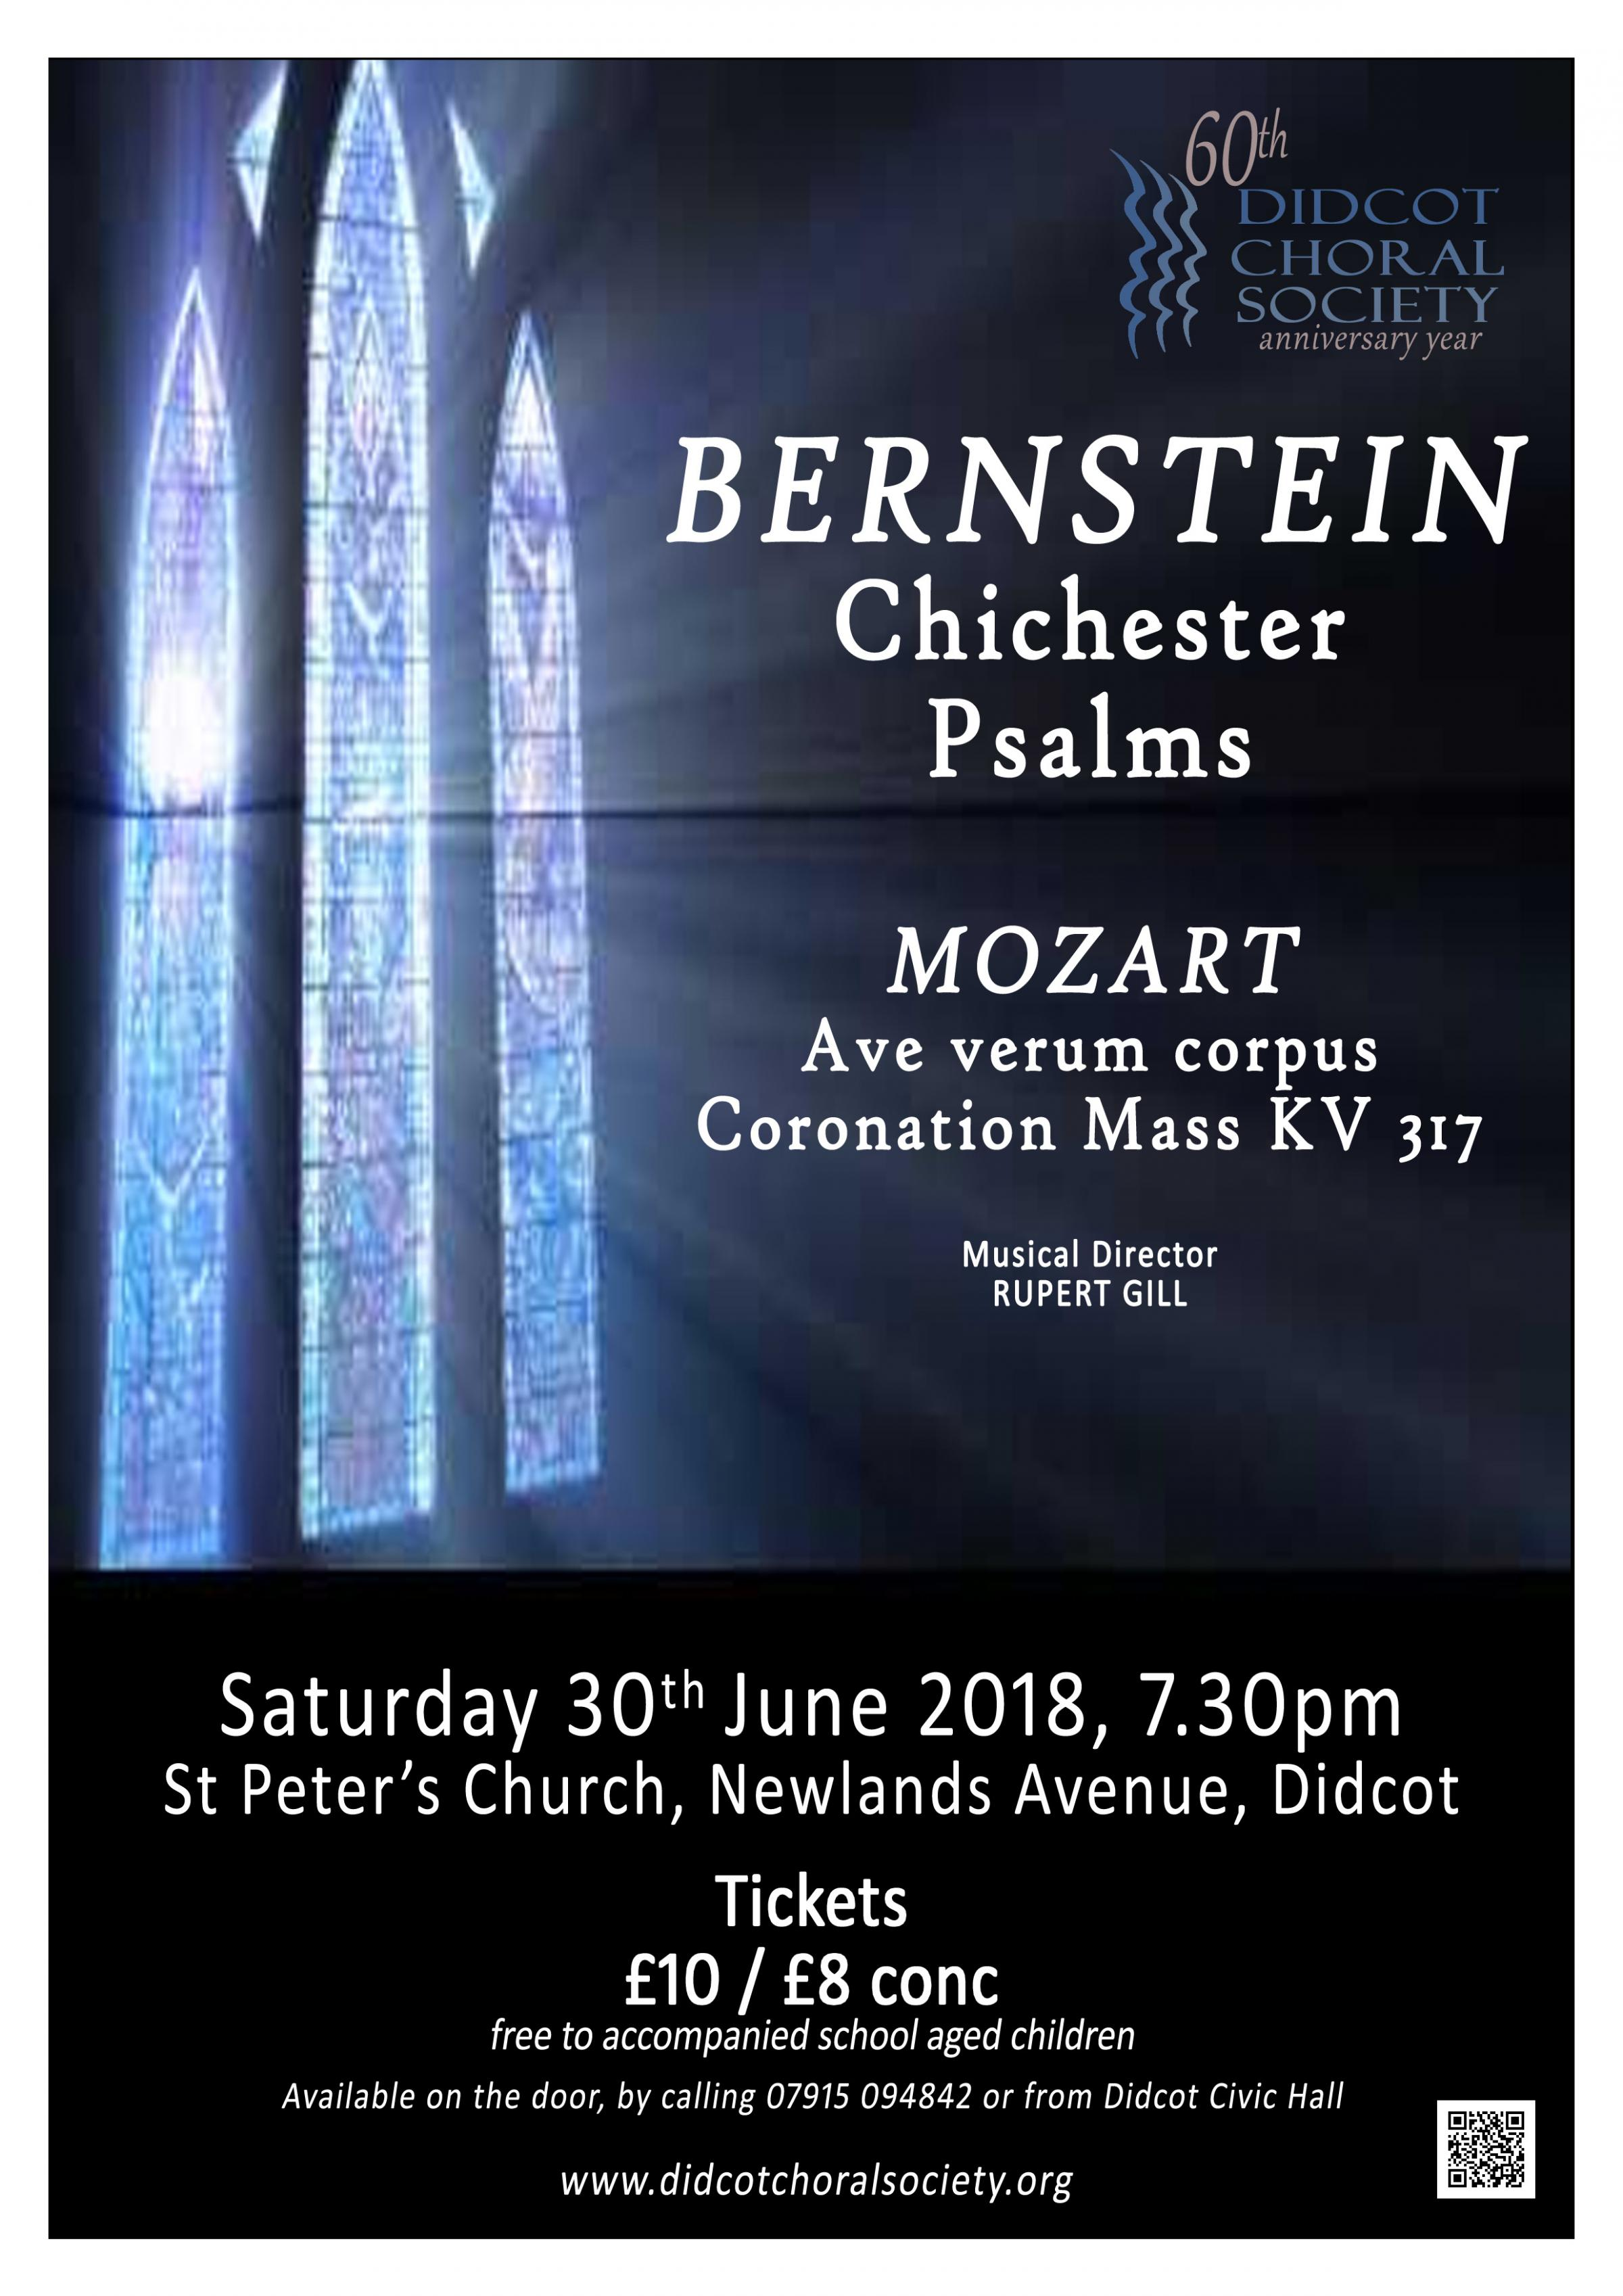 Didcot Choral Society: BERNSTEIN Chichester Psalms and Mozart